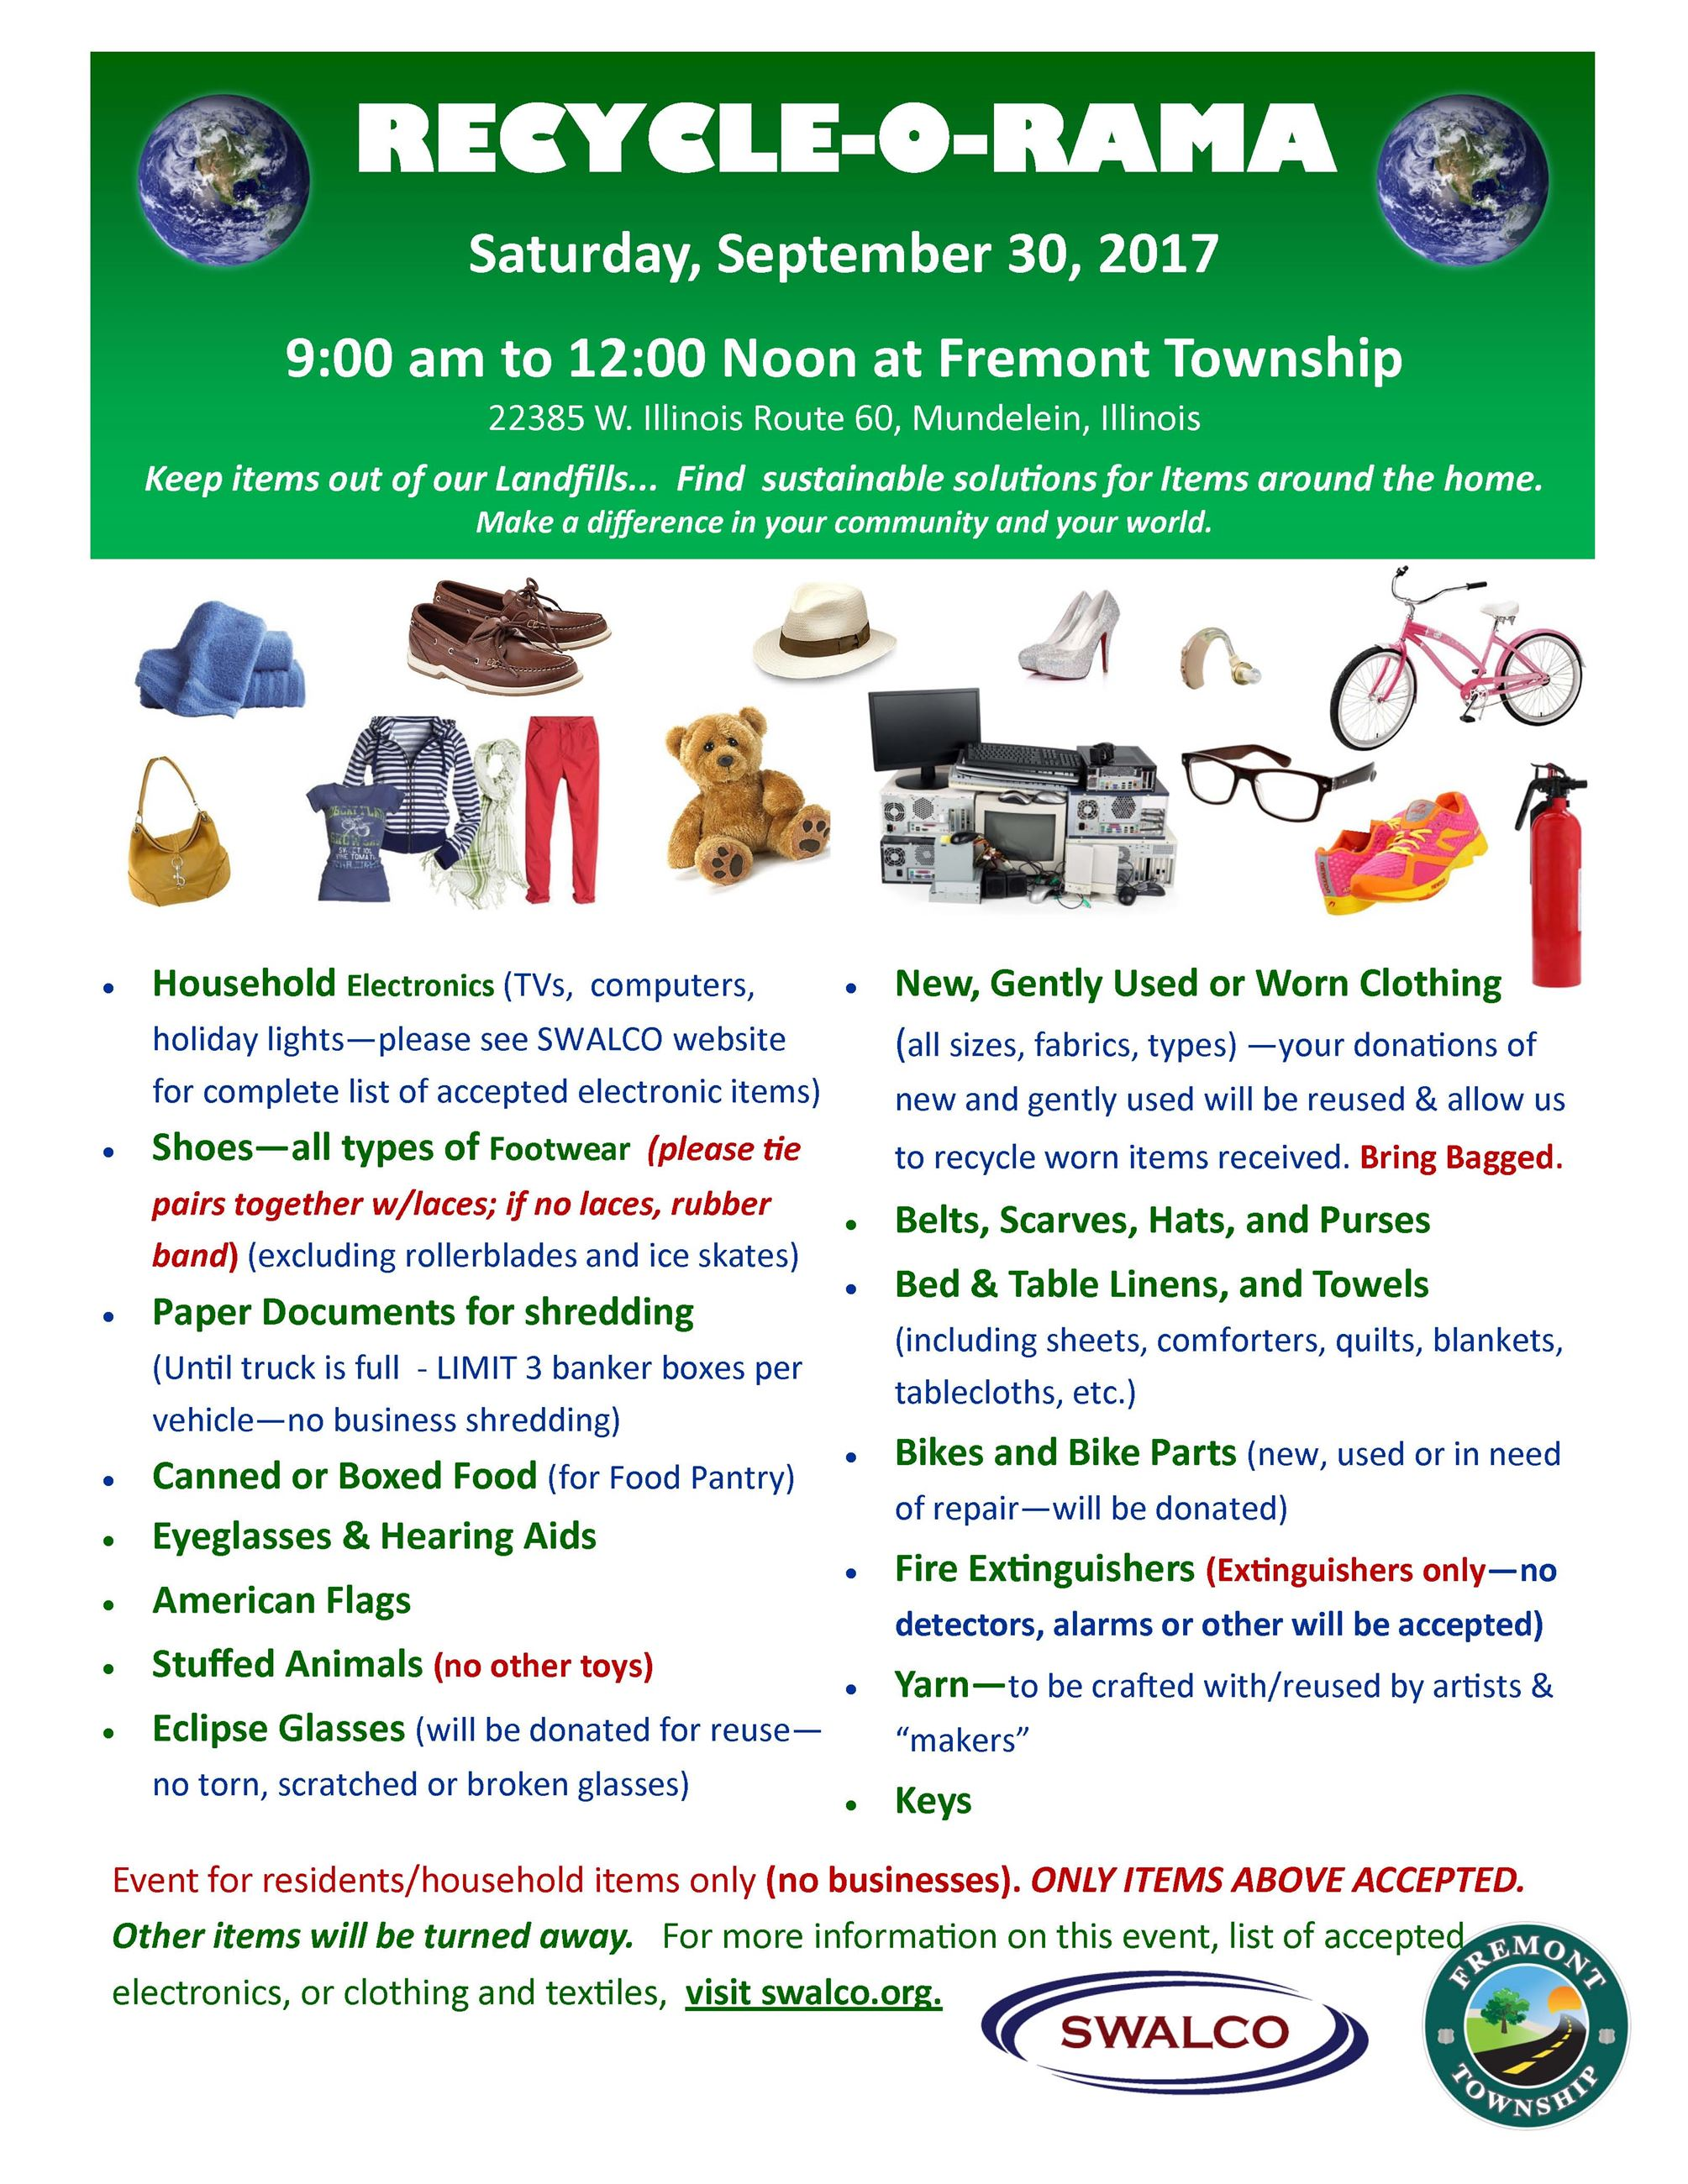 Recycle-O-Rama Fremont Township and SWALCO September 2017